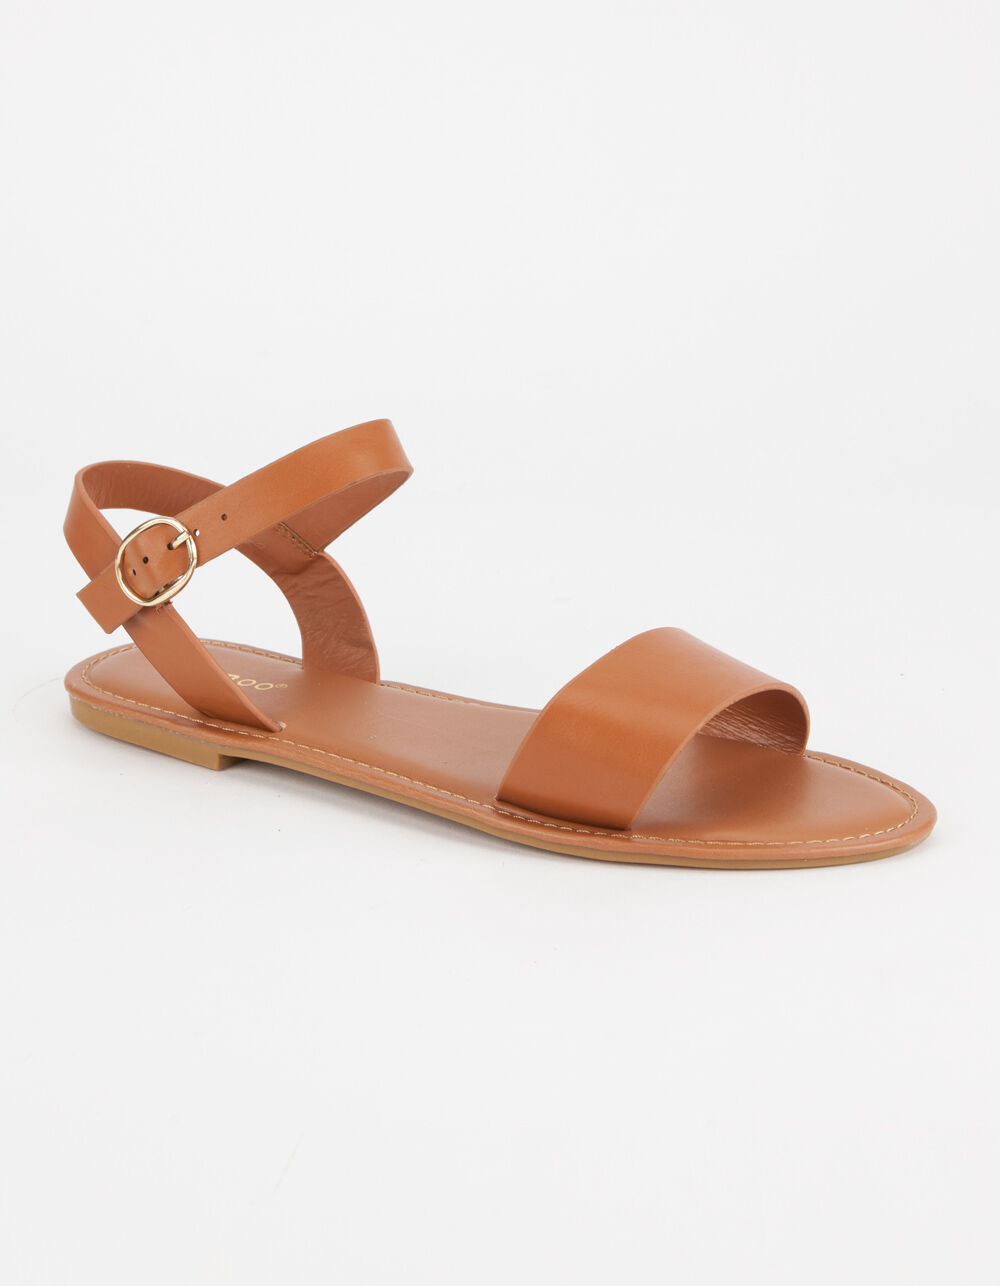 BAMBOO ANKLE STRAP SANDALS